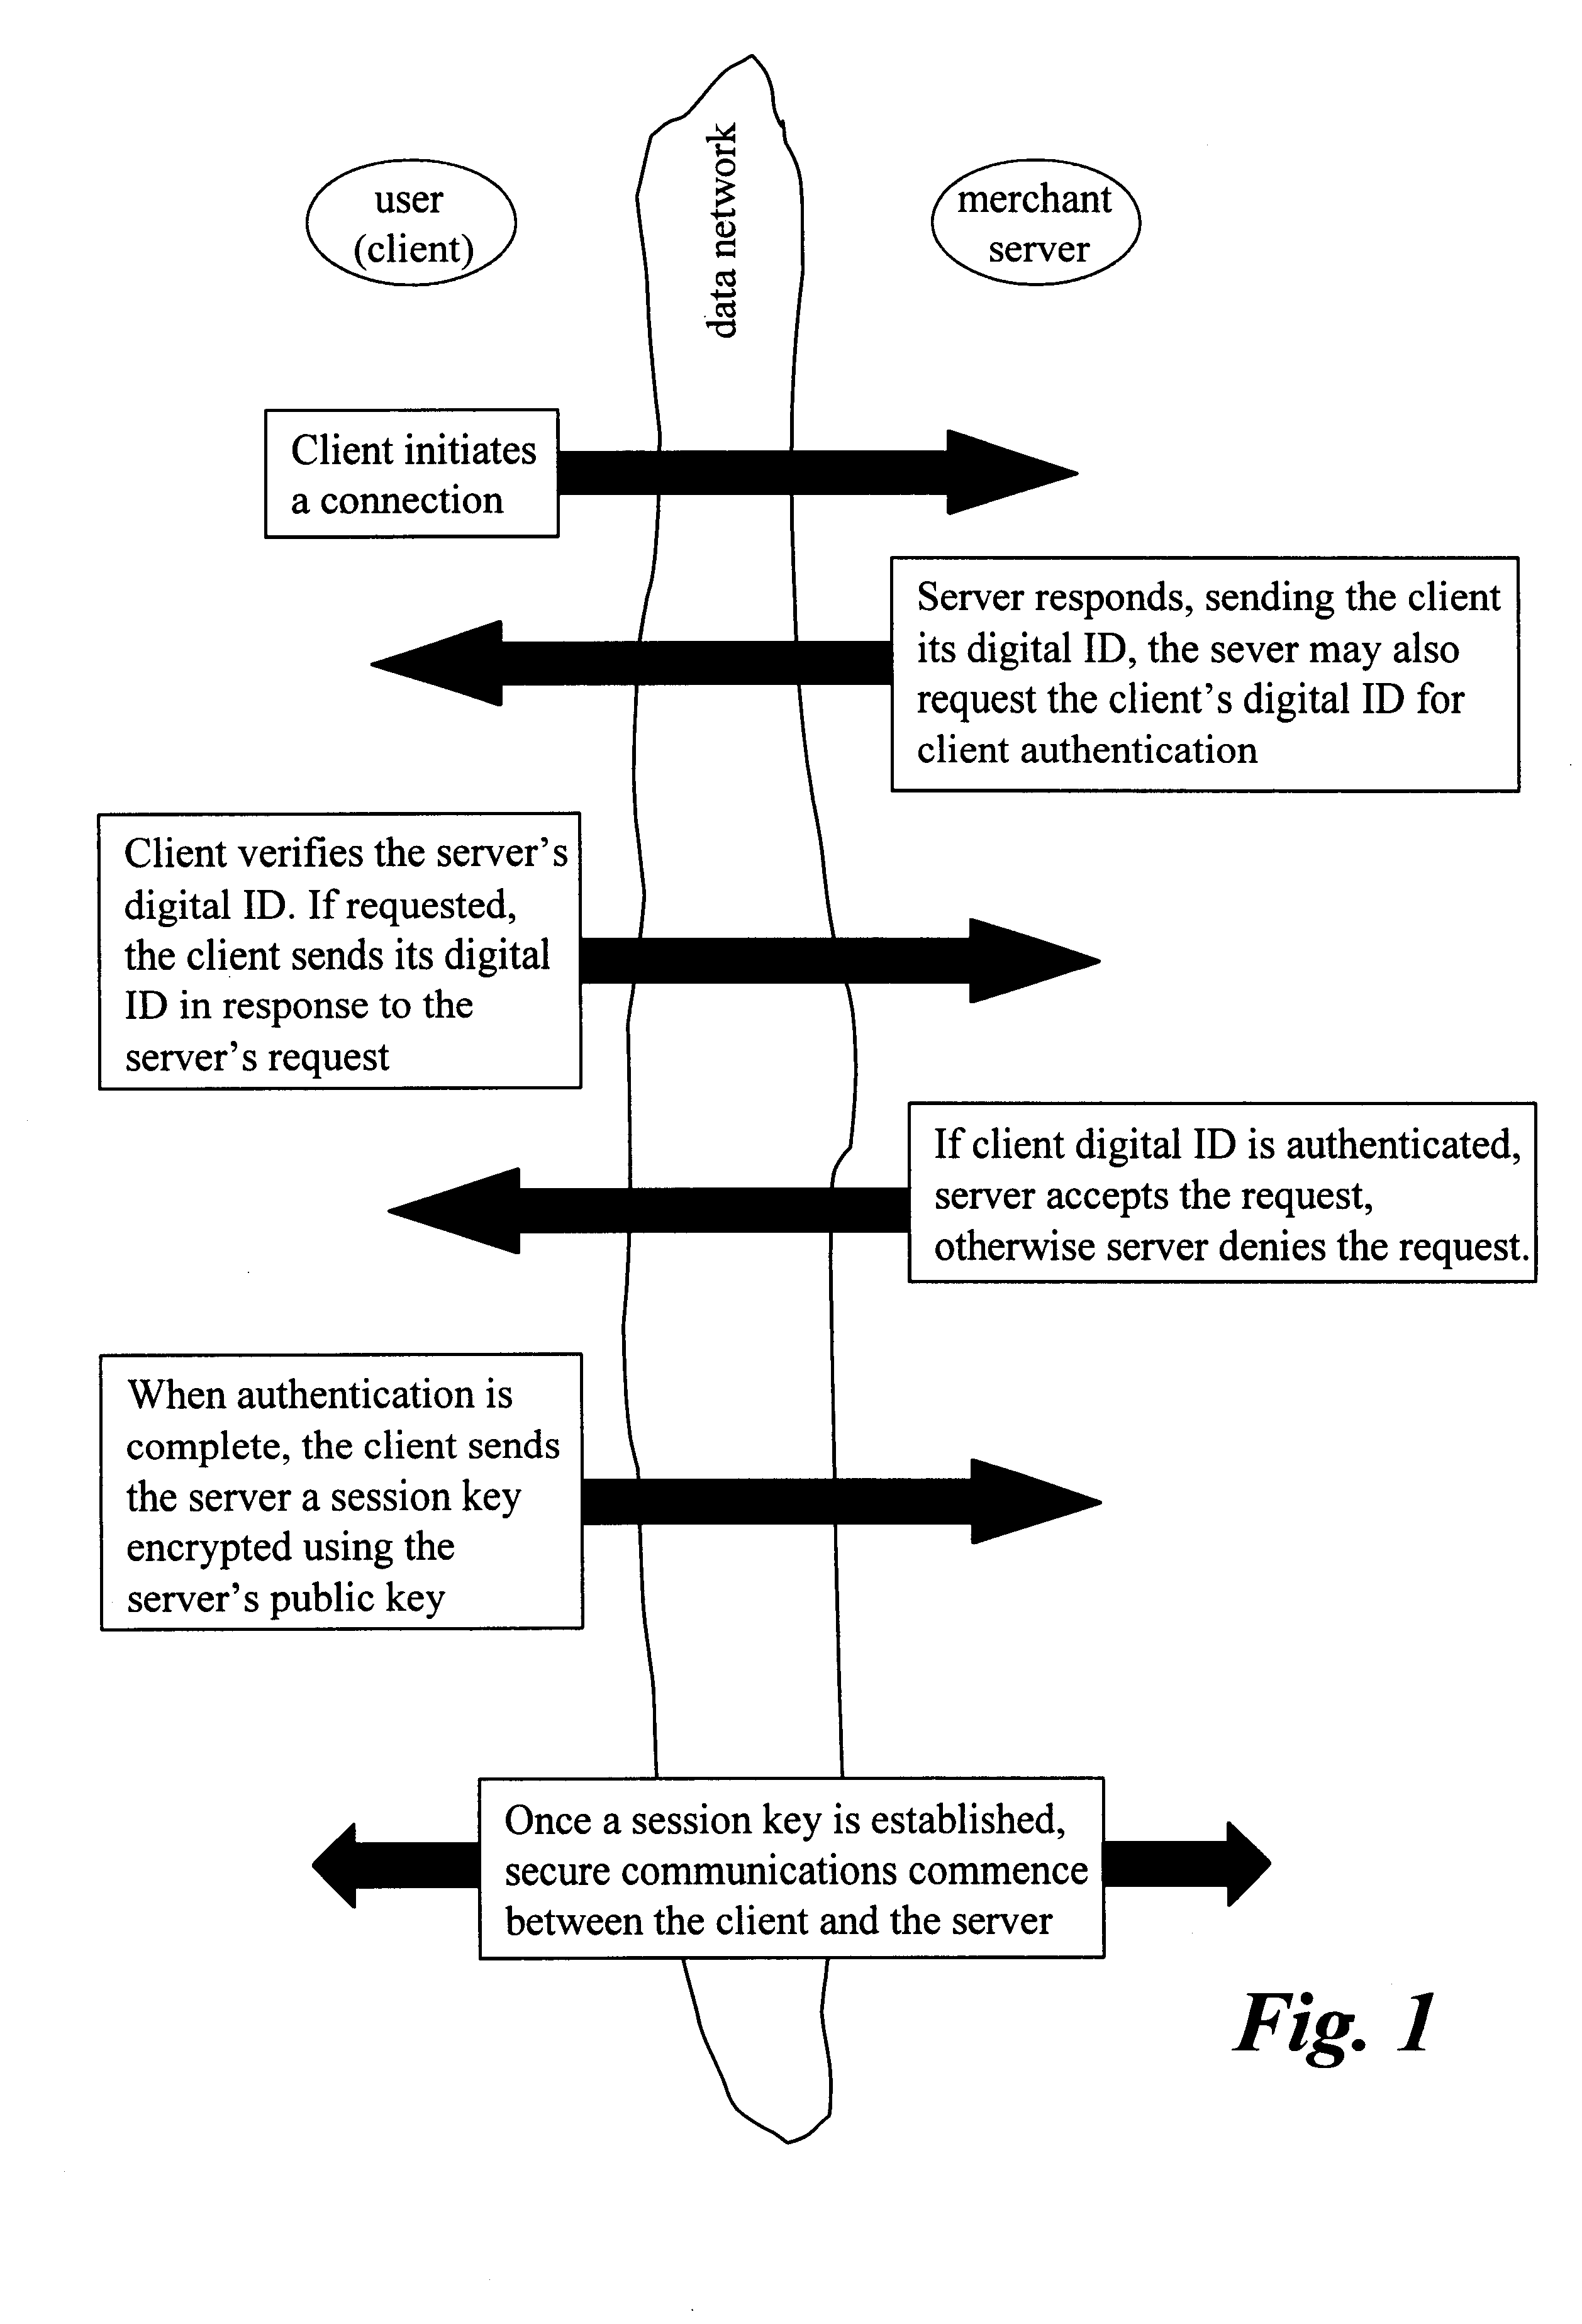 Key factors to consider when choosing web server software wml cloud - Patent Drawing